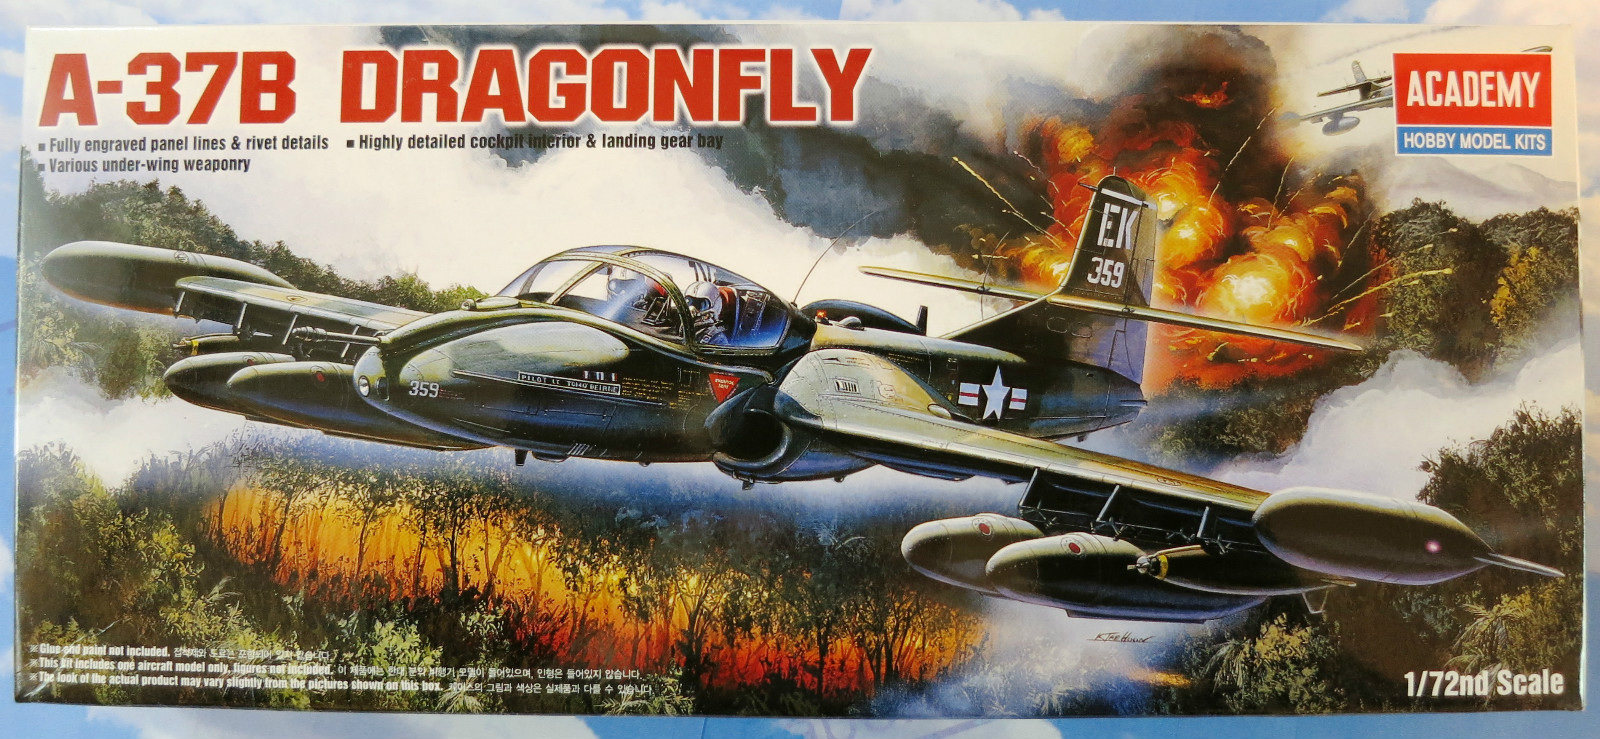 Academy A-37B Dragonfly 1/72 Model Kit image